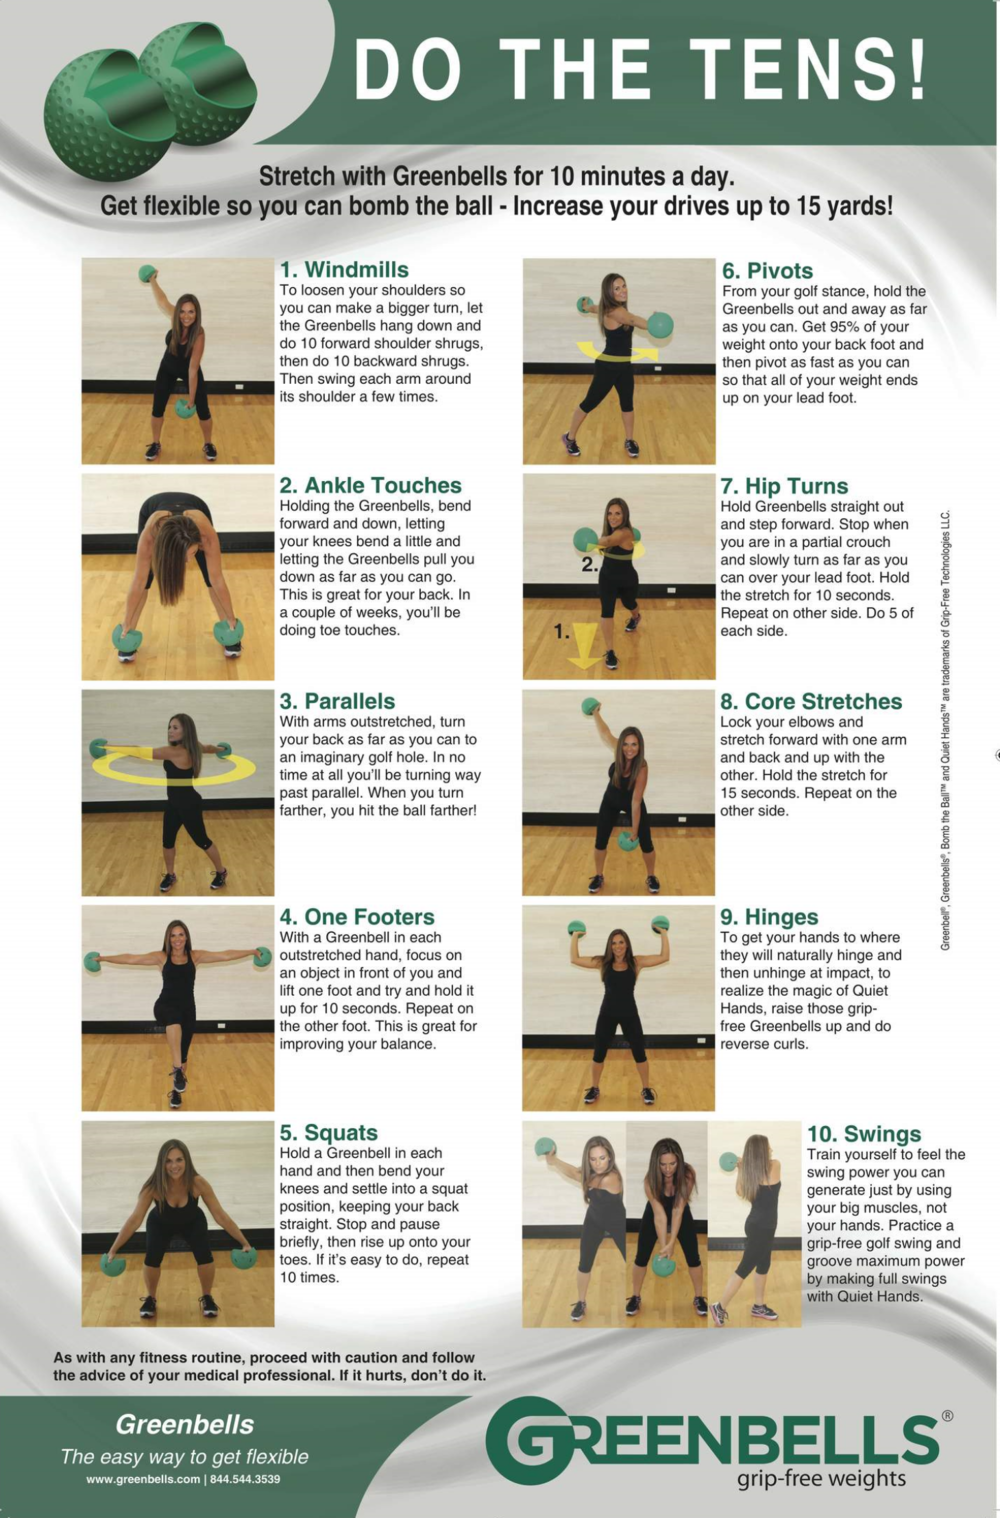 DO THE GREENBELL TENS WITH TAMMY RANDOLPH